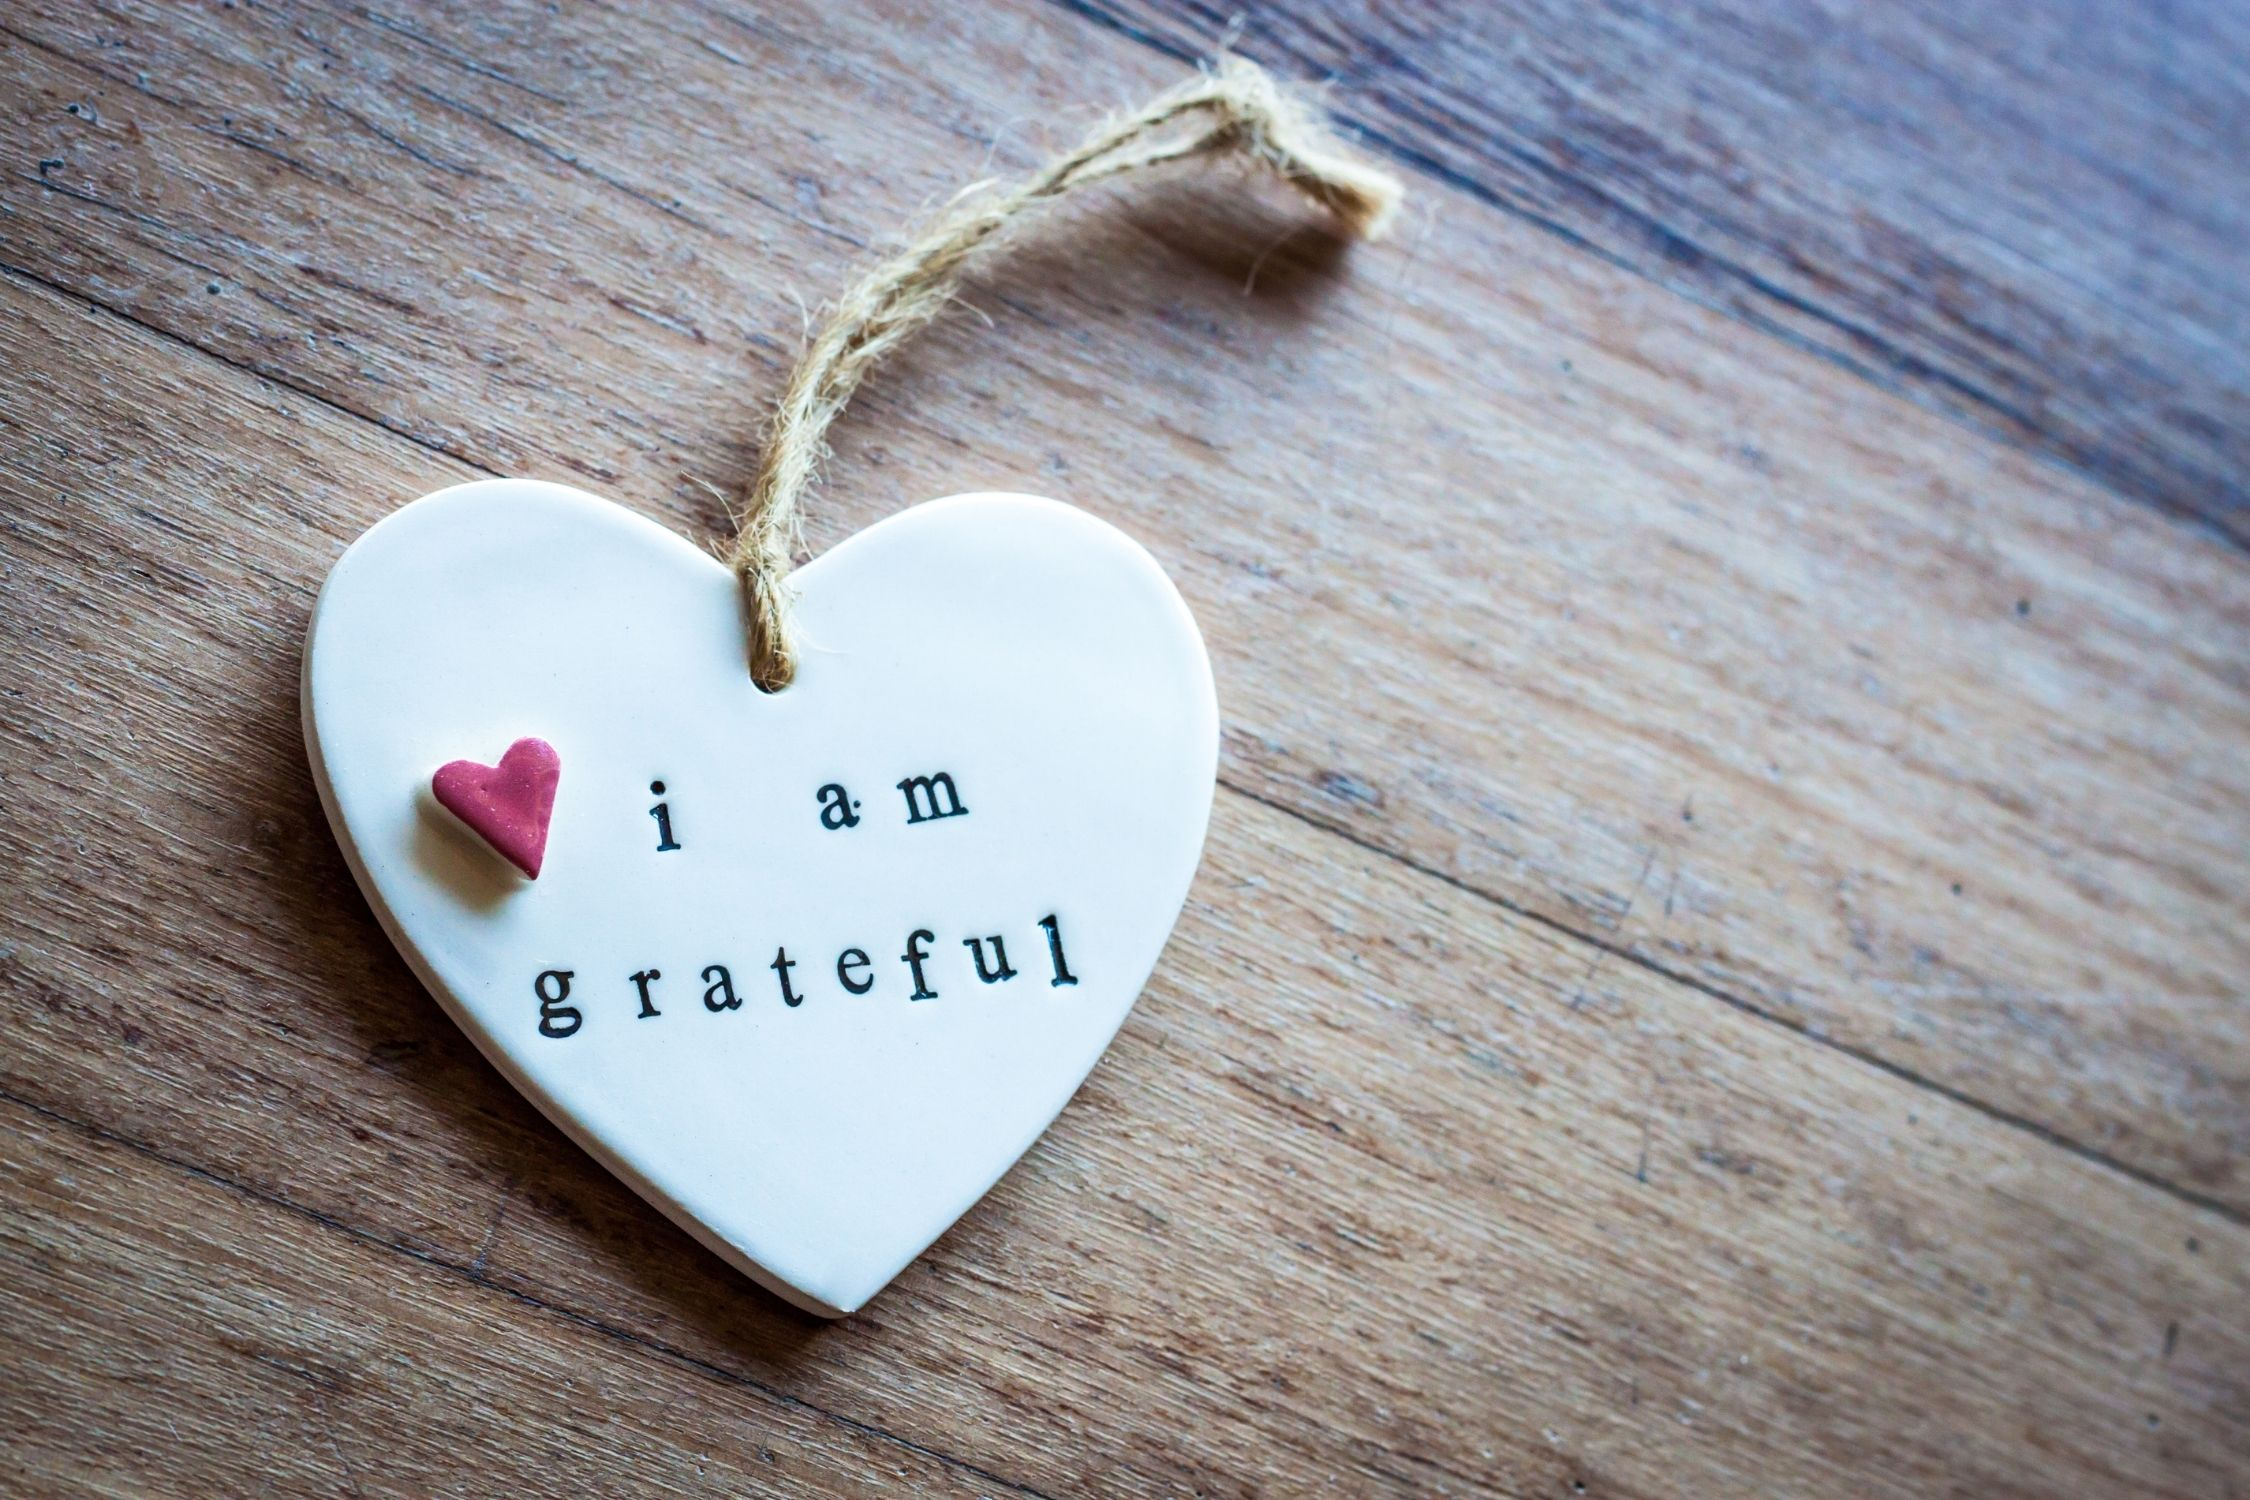 Cultivating A Grateful Heart In A Broken World